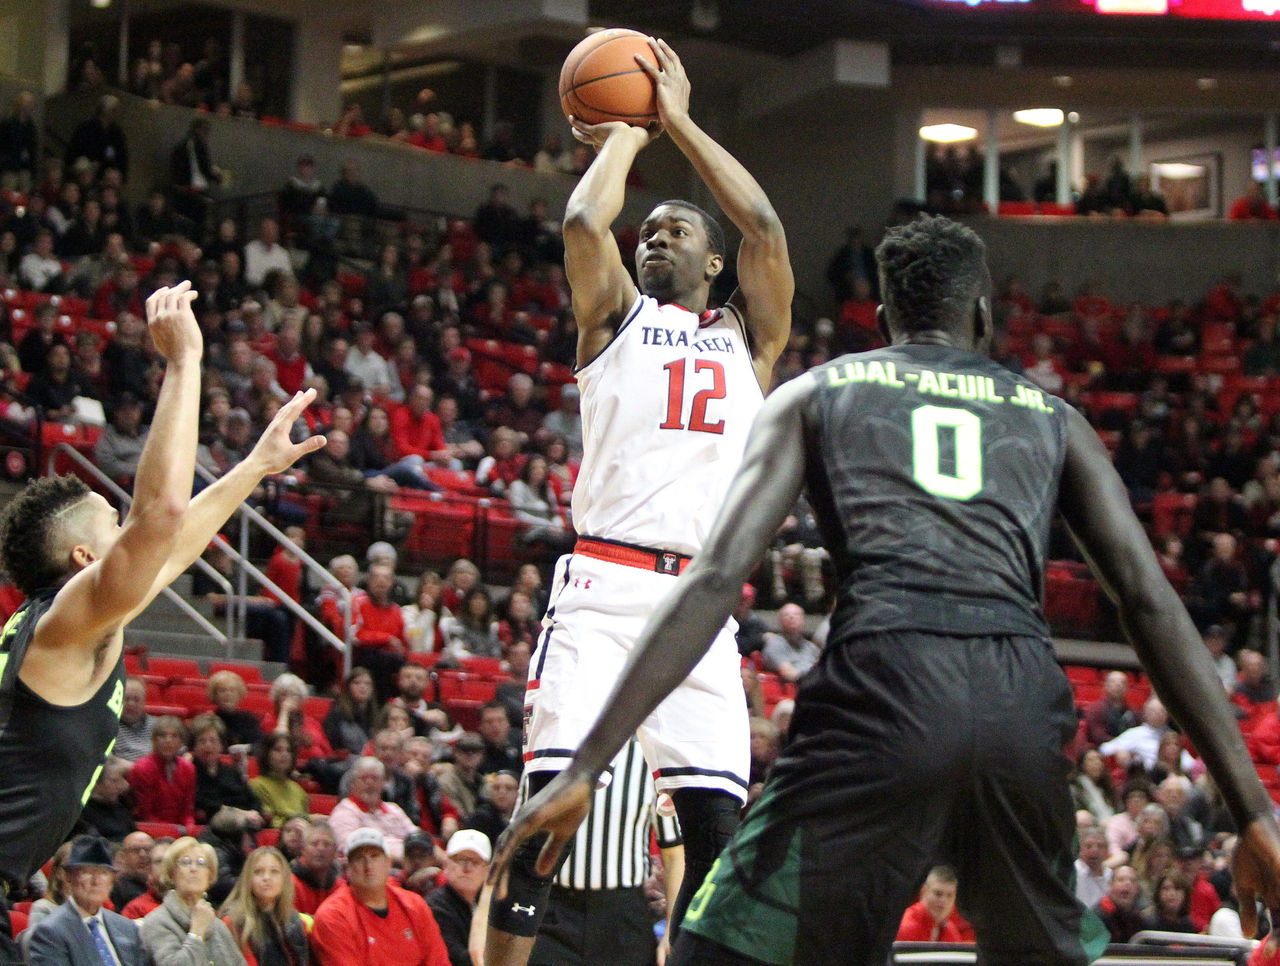 Cropped_2017-02-14t011116z_976553941_nocid_rtrmadp_3_ncaa-basketball-baylor-at-texas-tech